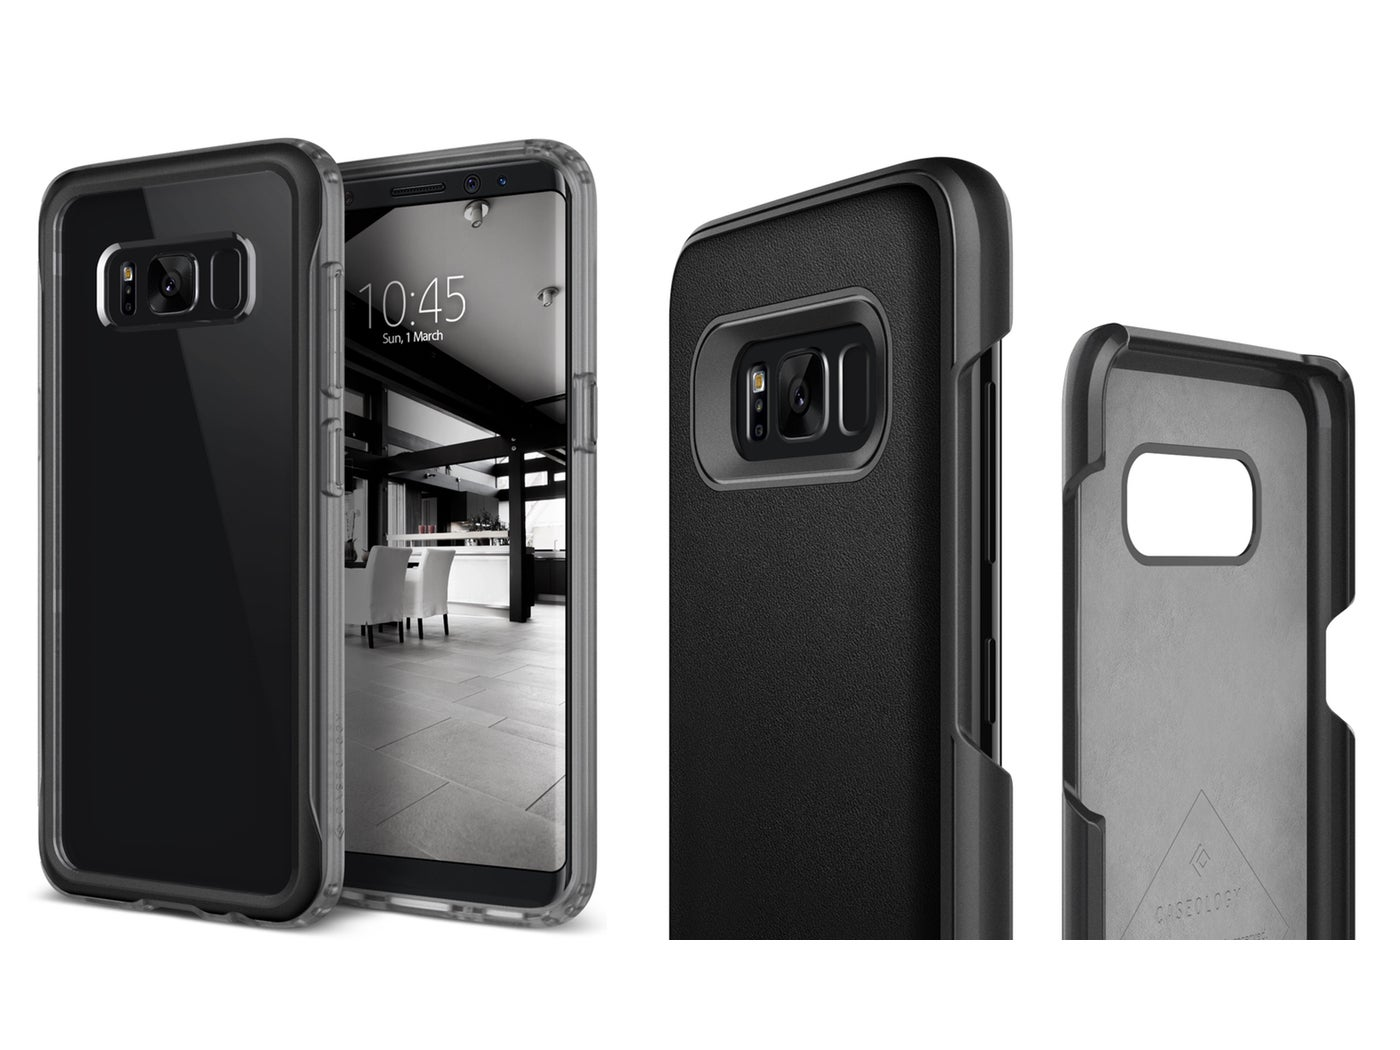 newest 85eff bad41 Galaxy S8 and S8+ case roundup: Protect your investment in style ...